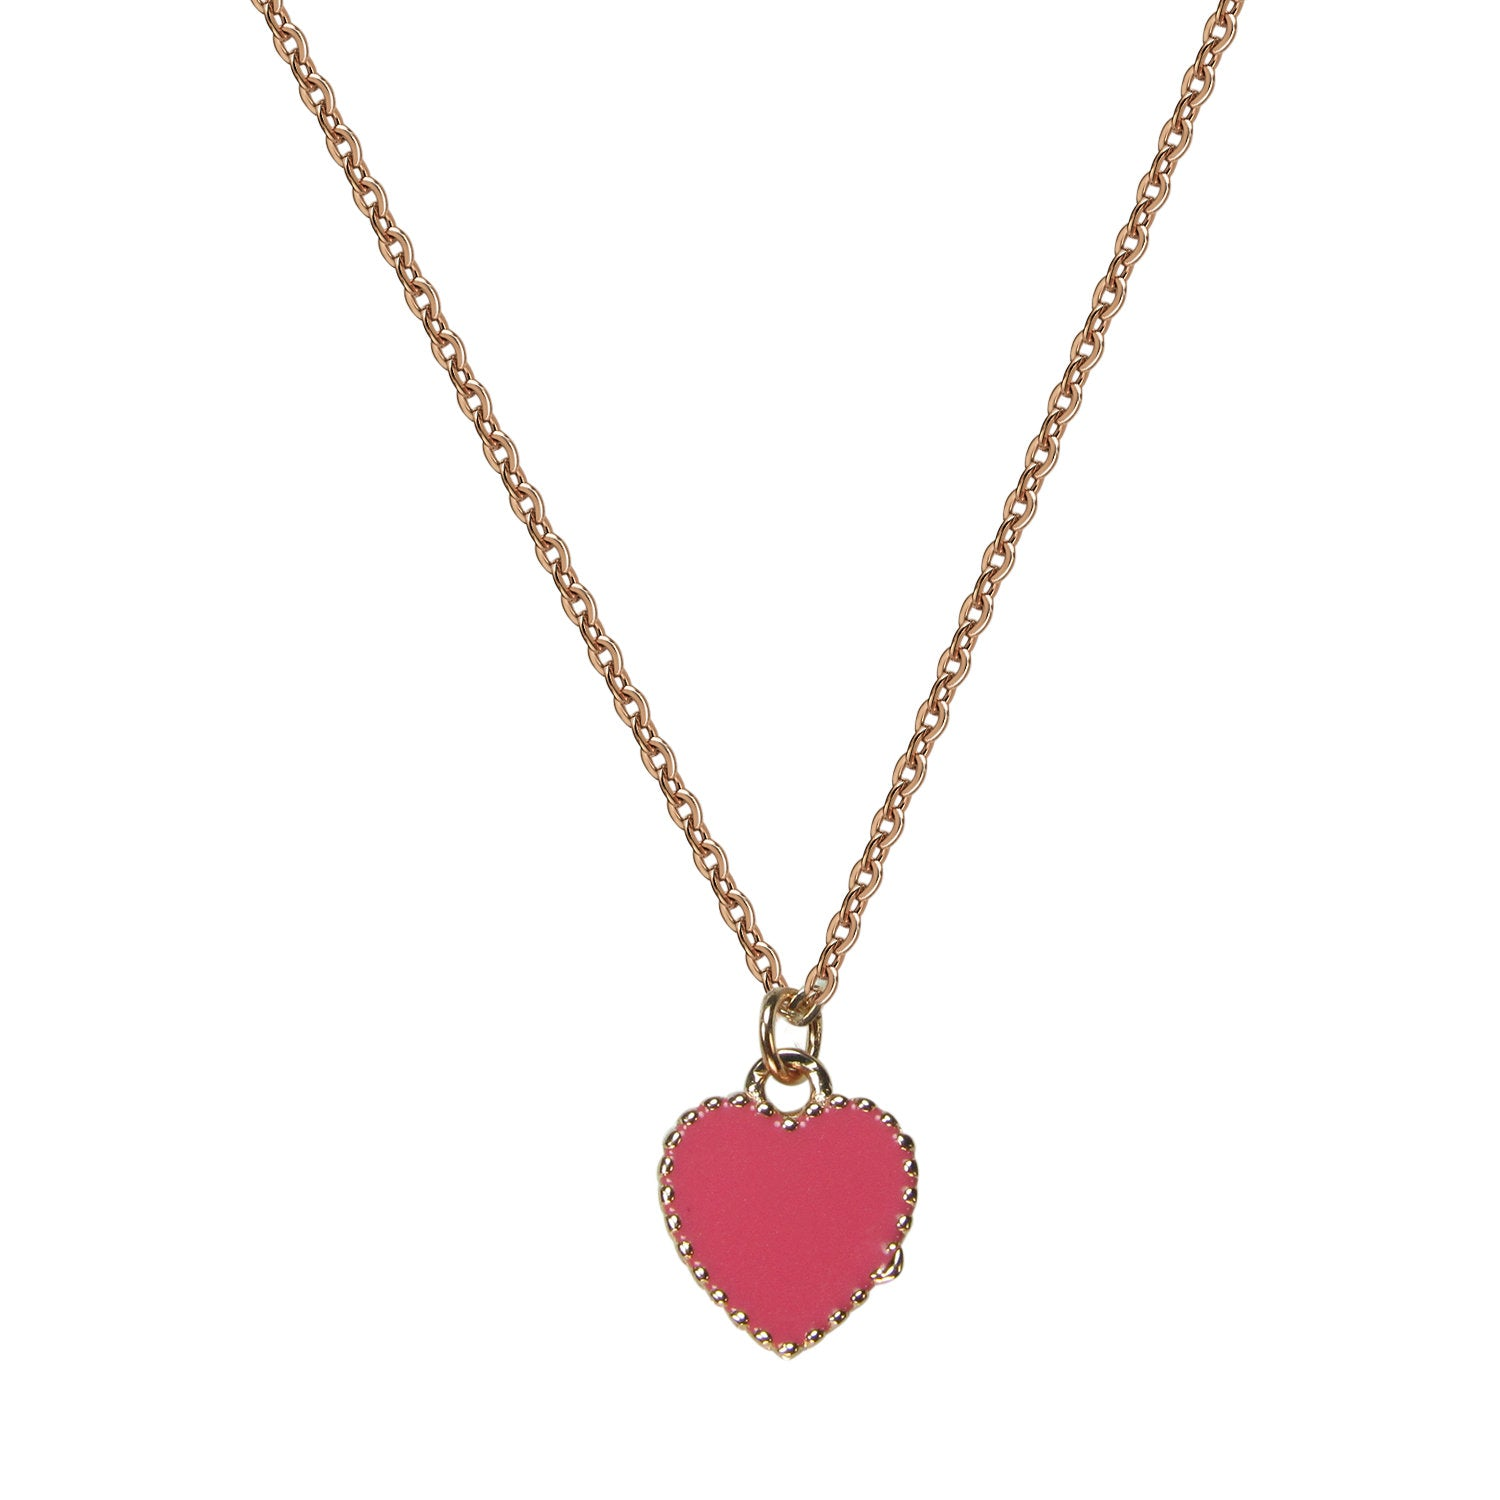 PINK HEART STERLING SILVER NECKLACE